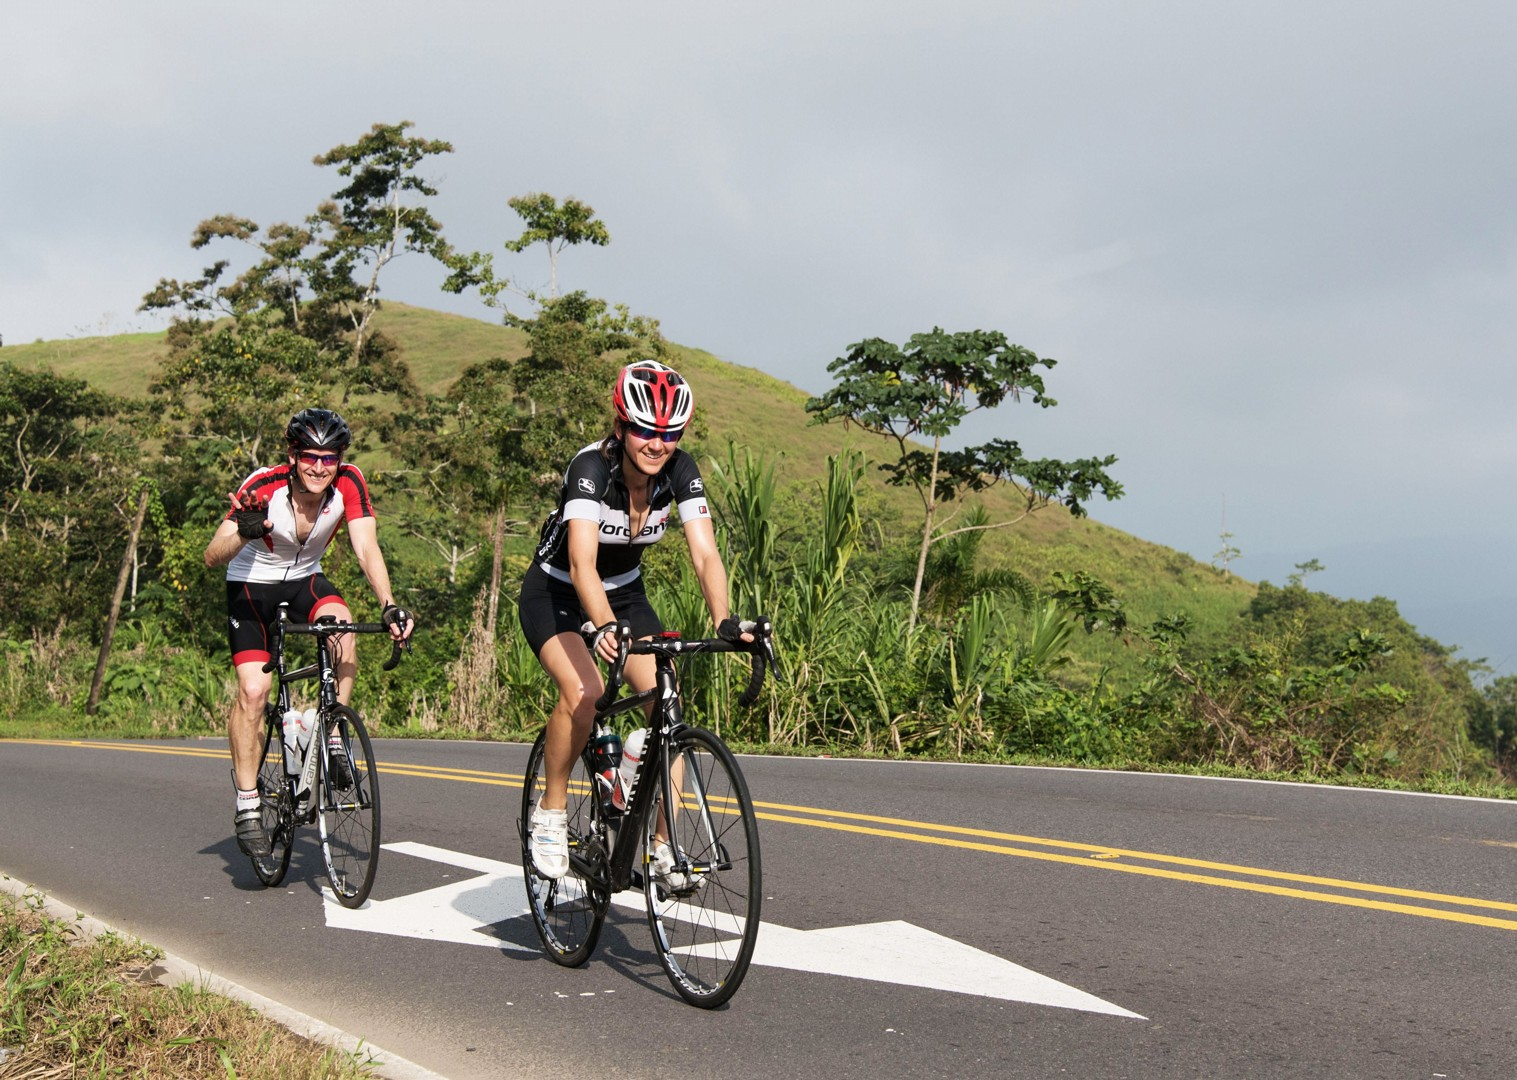 costa-rica-guided-road-cycling-holiday-ruta-de-los-volcanes.jpg - Costa Rica - Ruta de los Volcanes - Guided Road Cycling Holiday - Road Cycling